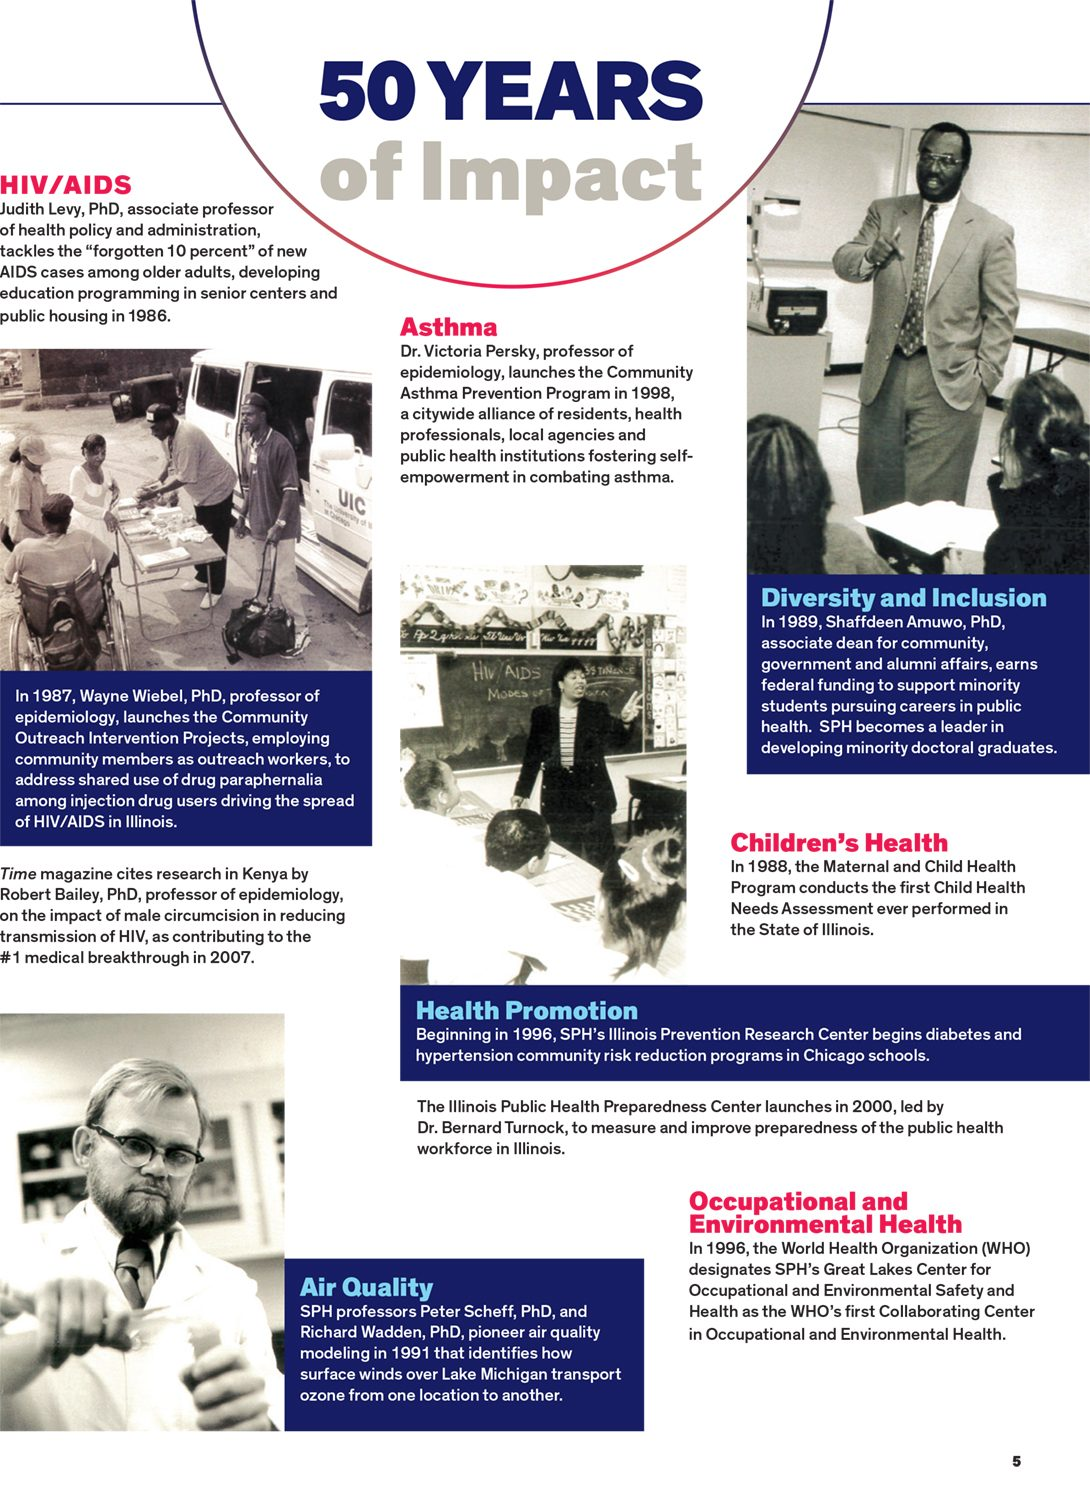 A graphic timeline displaying notable moments of impact in the history of the School.  A screenreader accessible version of the timeline text is available directly below this image.